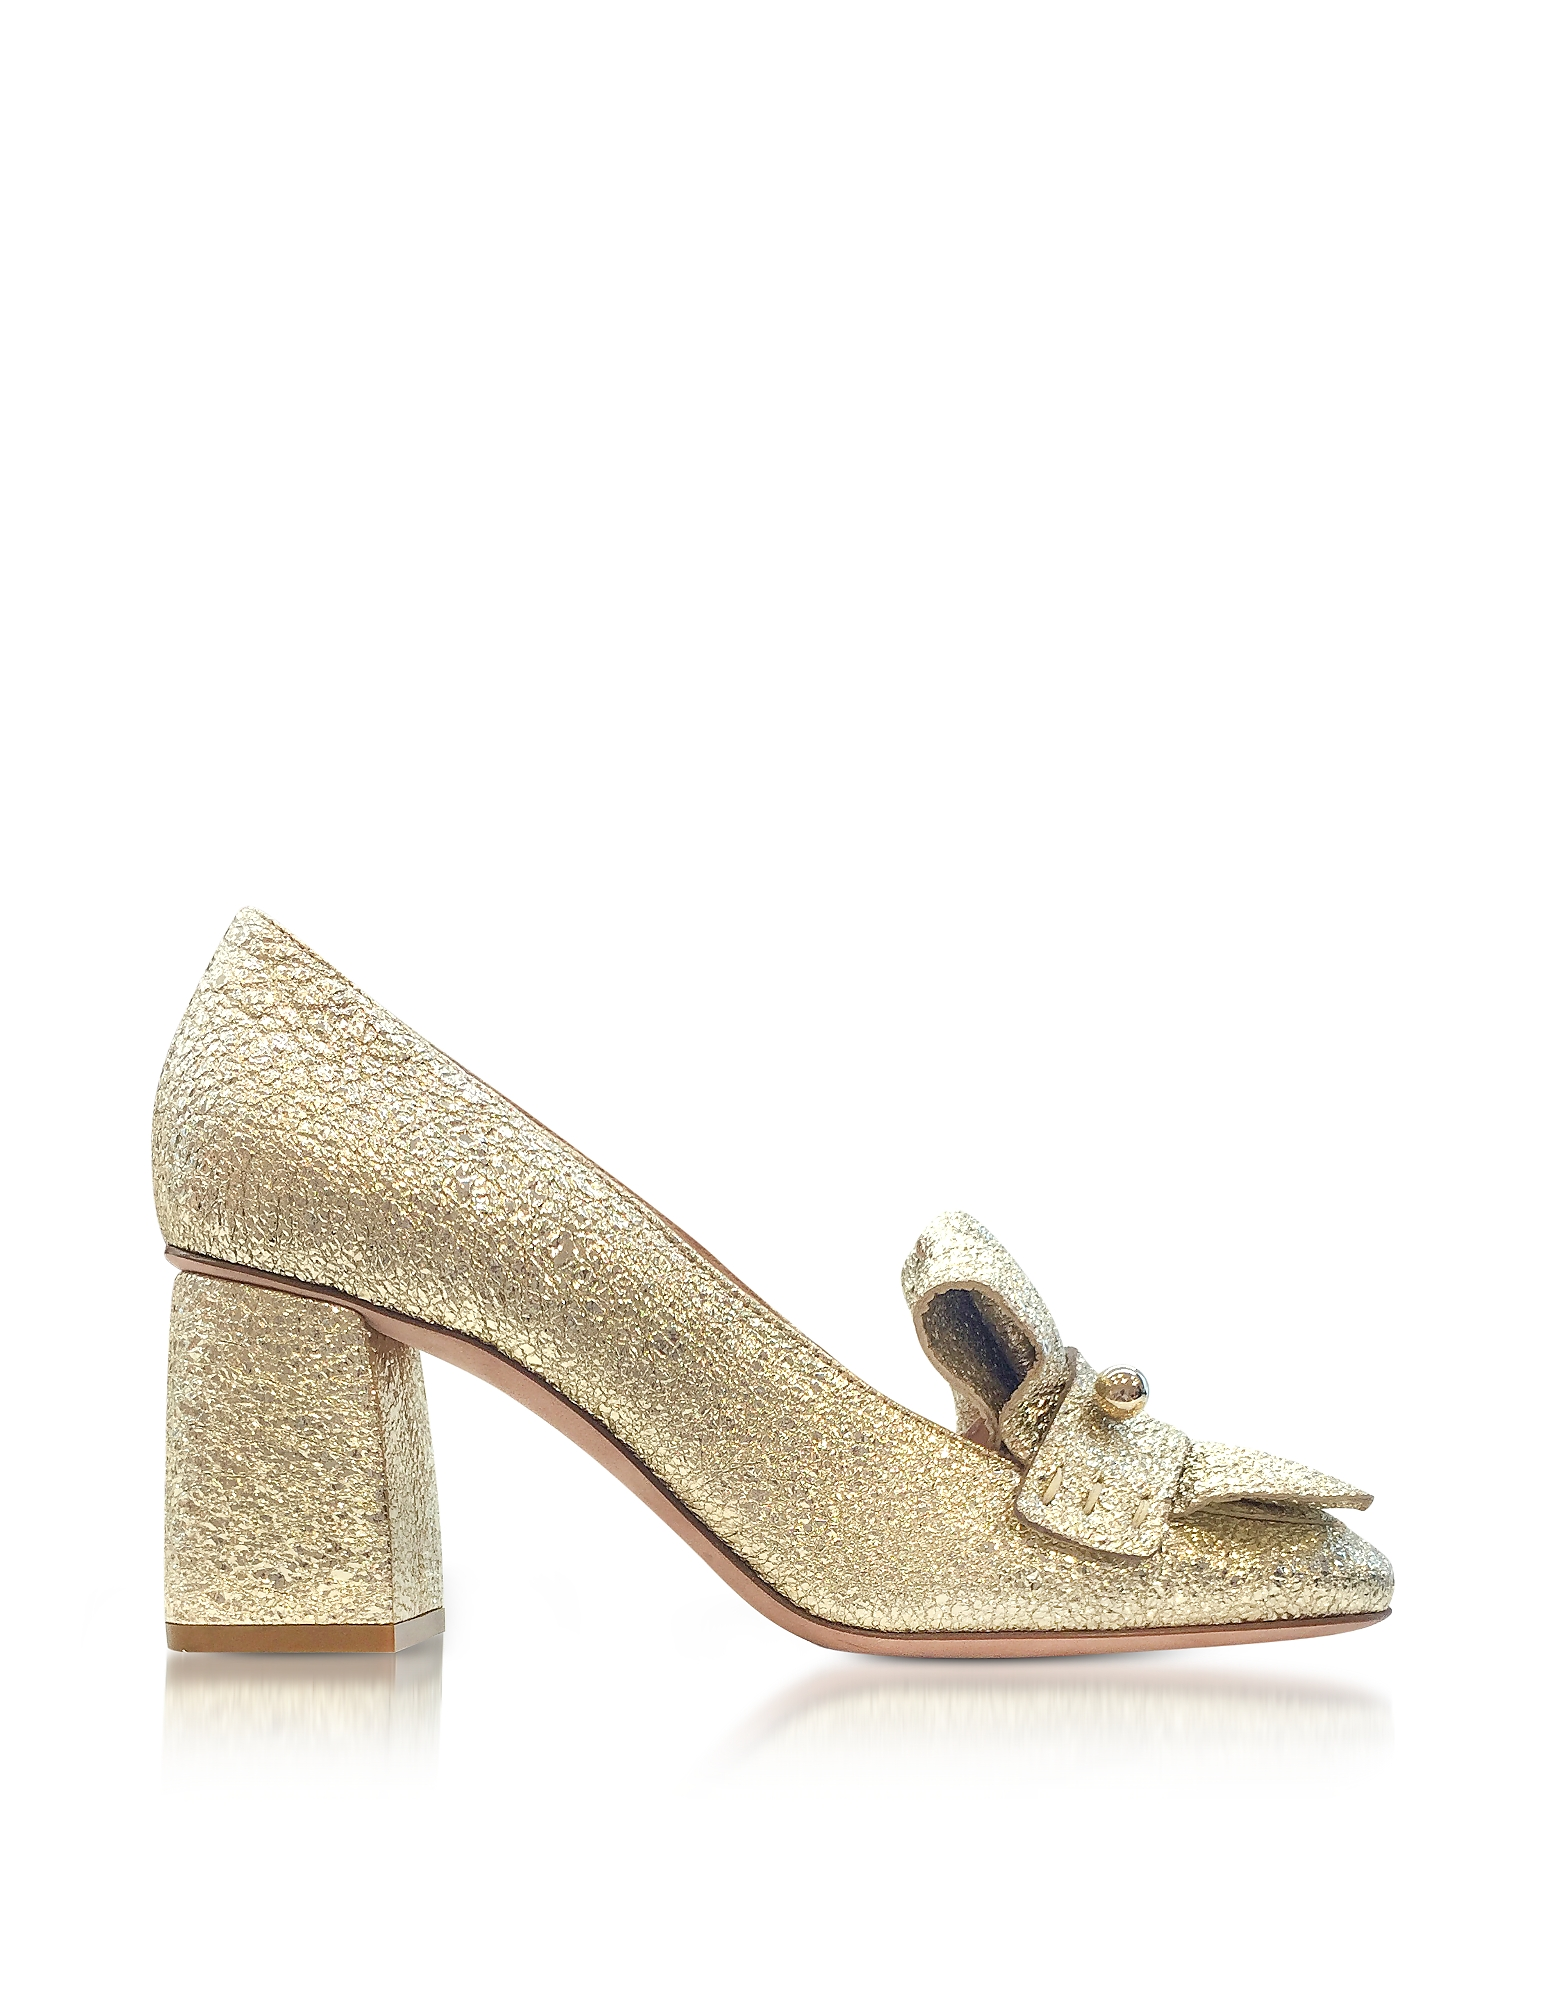 RED Valentino Shoes, Platinum Crackled Metallic Leather Heel Pumps